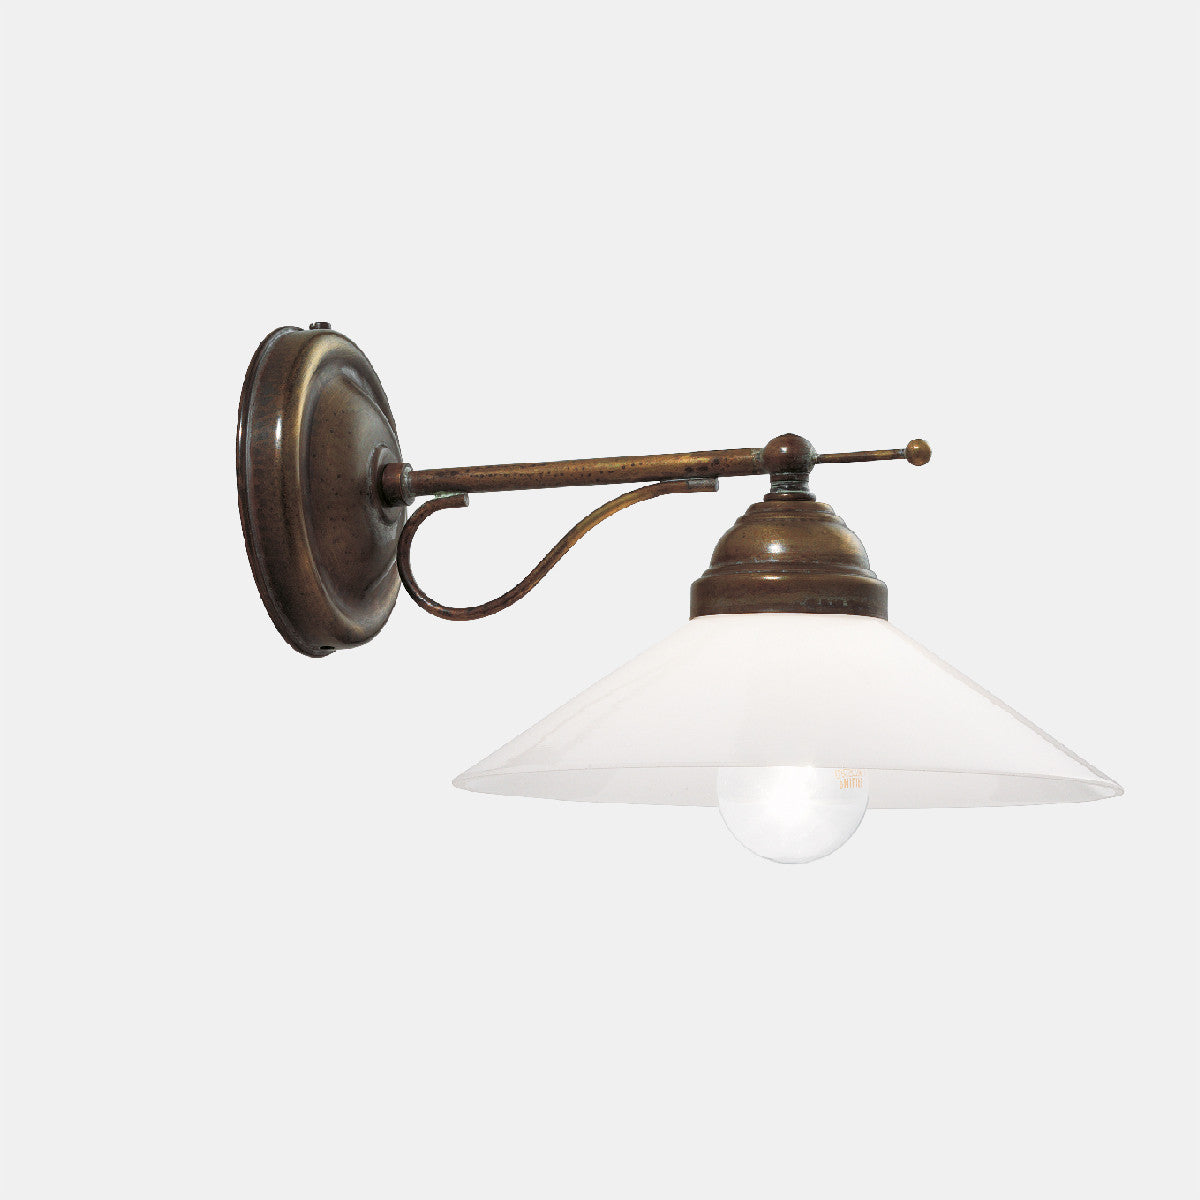 TABIA Wall Light 212.14.OV | touchGOODS